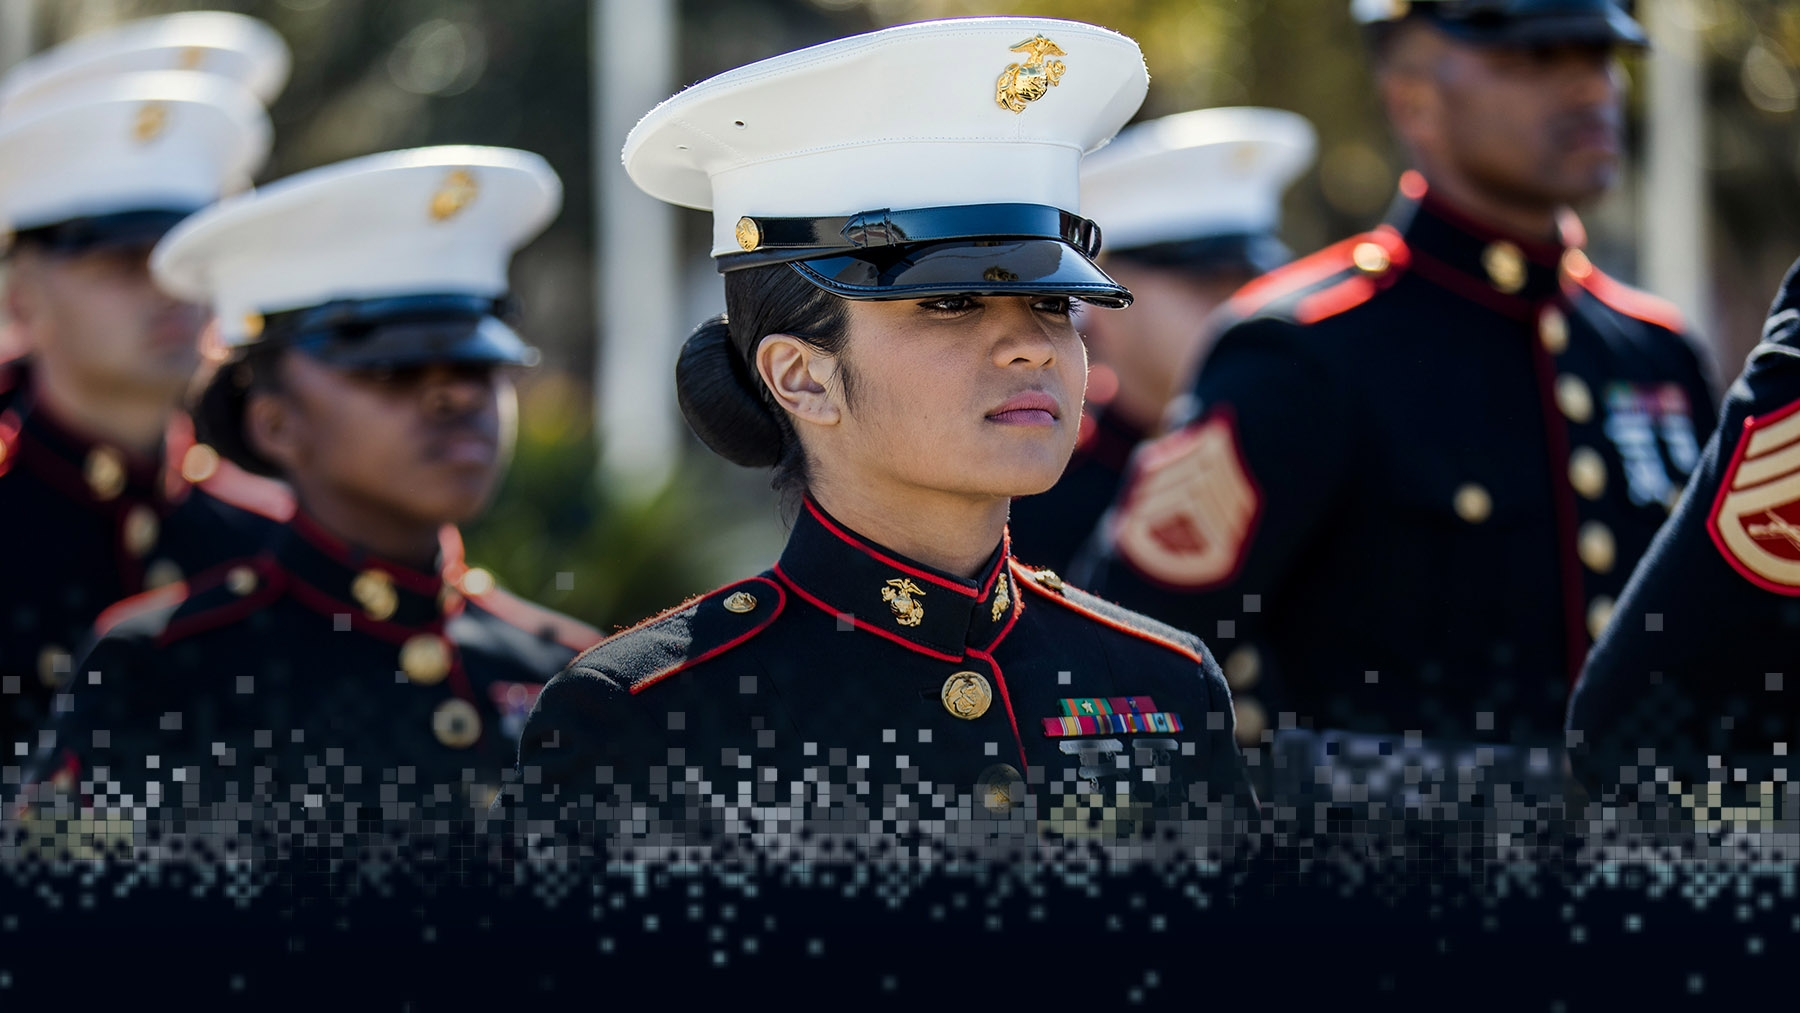 Marines in dress blues stand in formation.